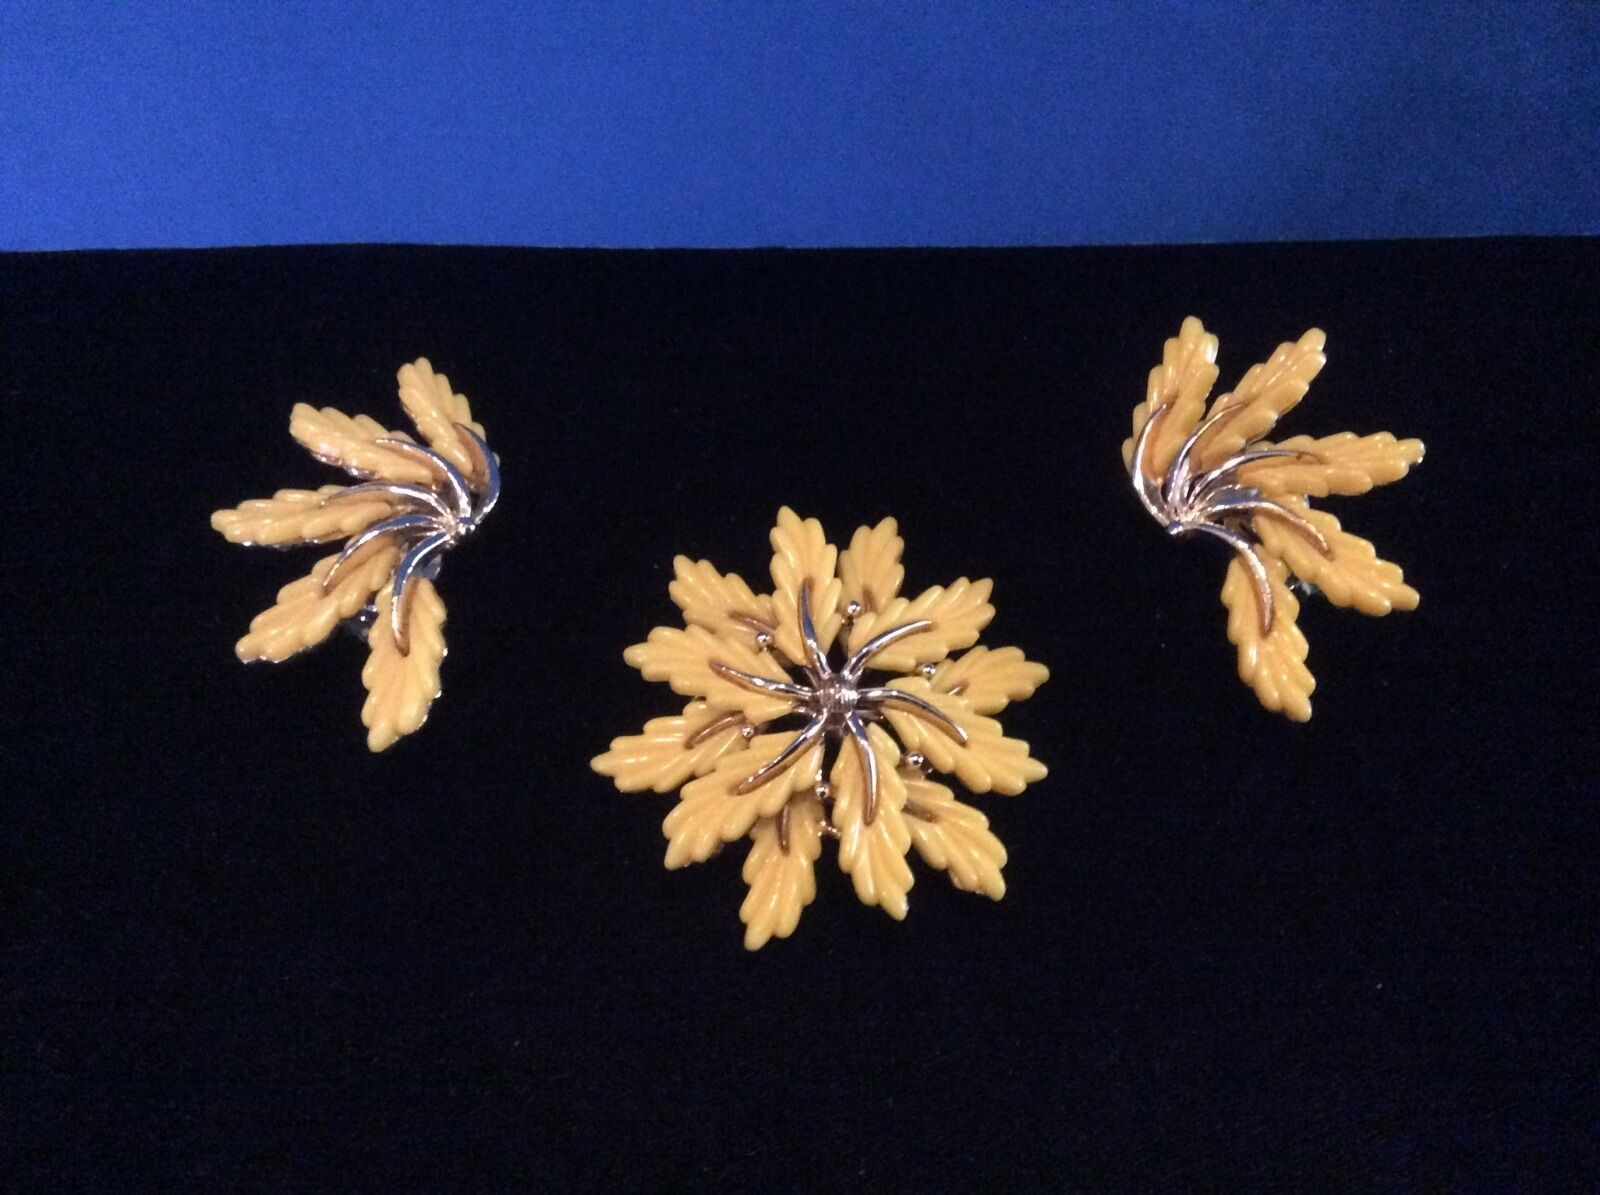 Vintage 1950's Early Plastic Pin and Clip-on Earrings